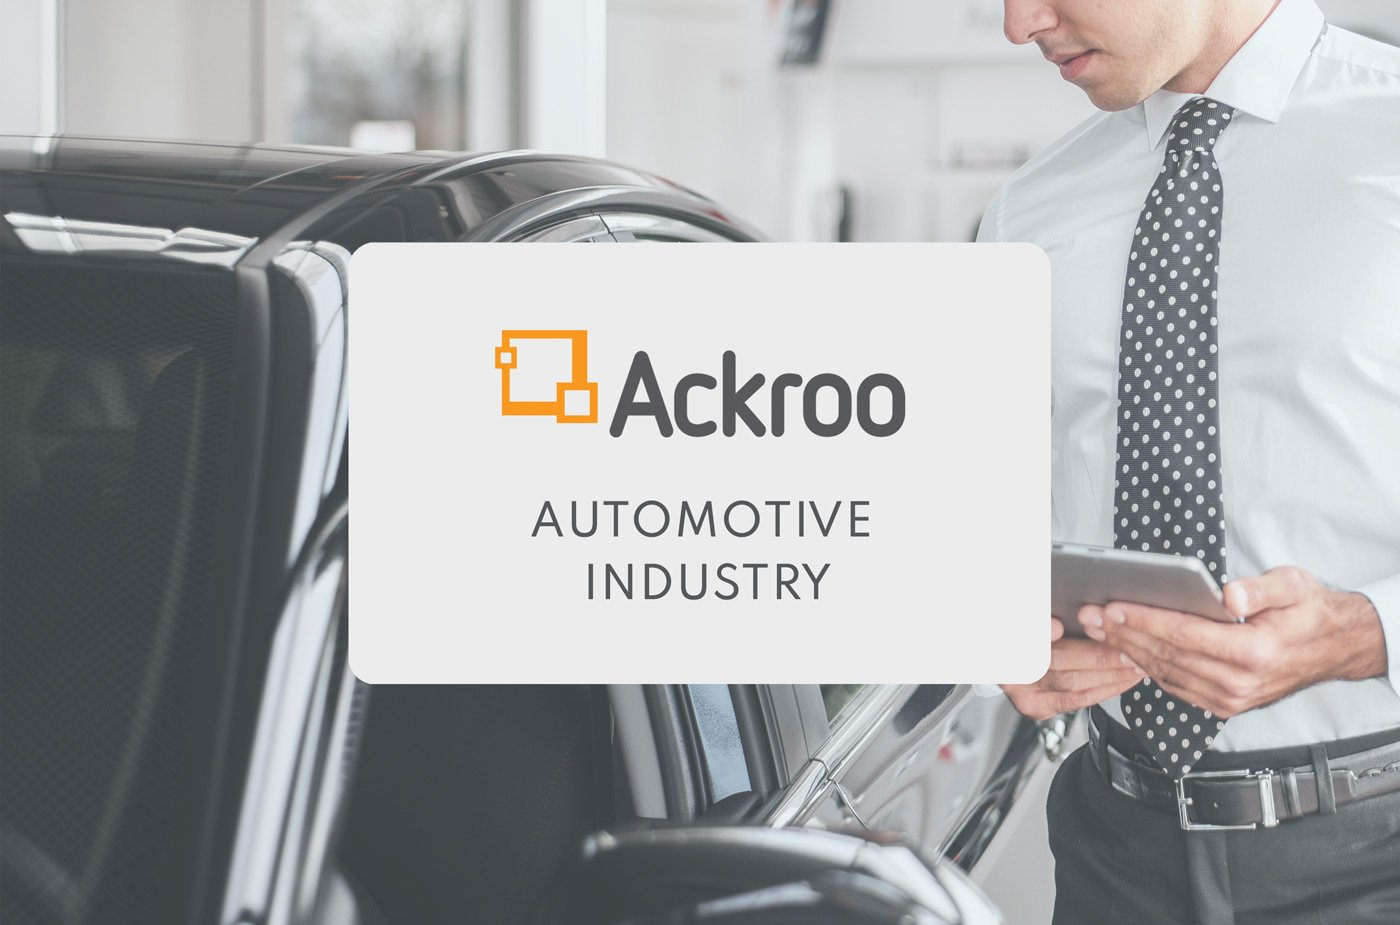 Ackroo Automotive - Case Study